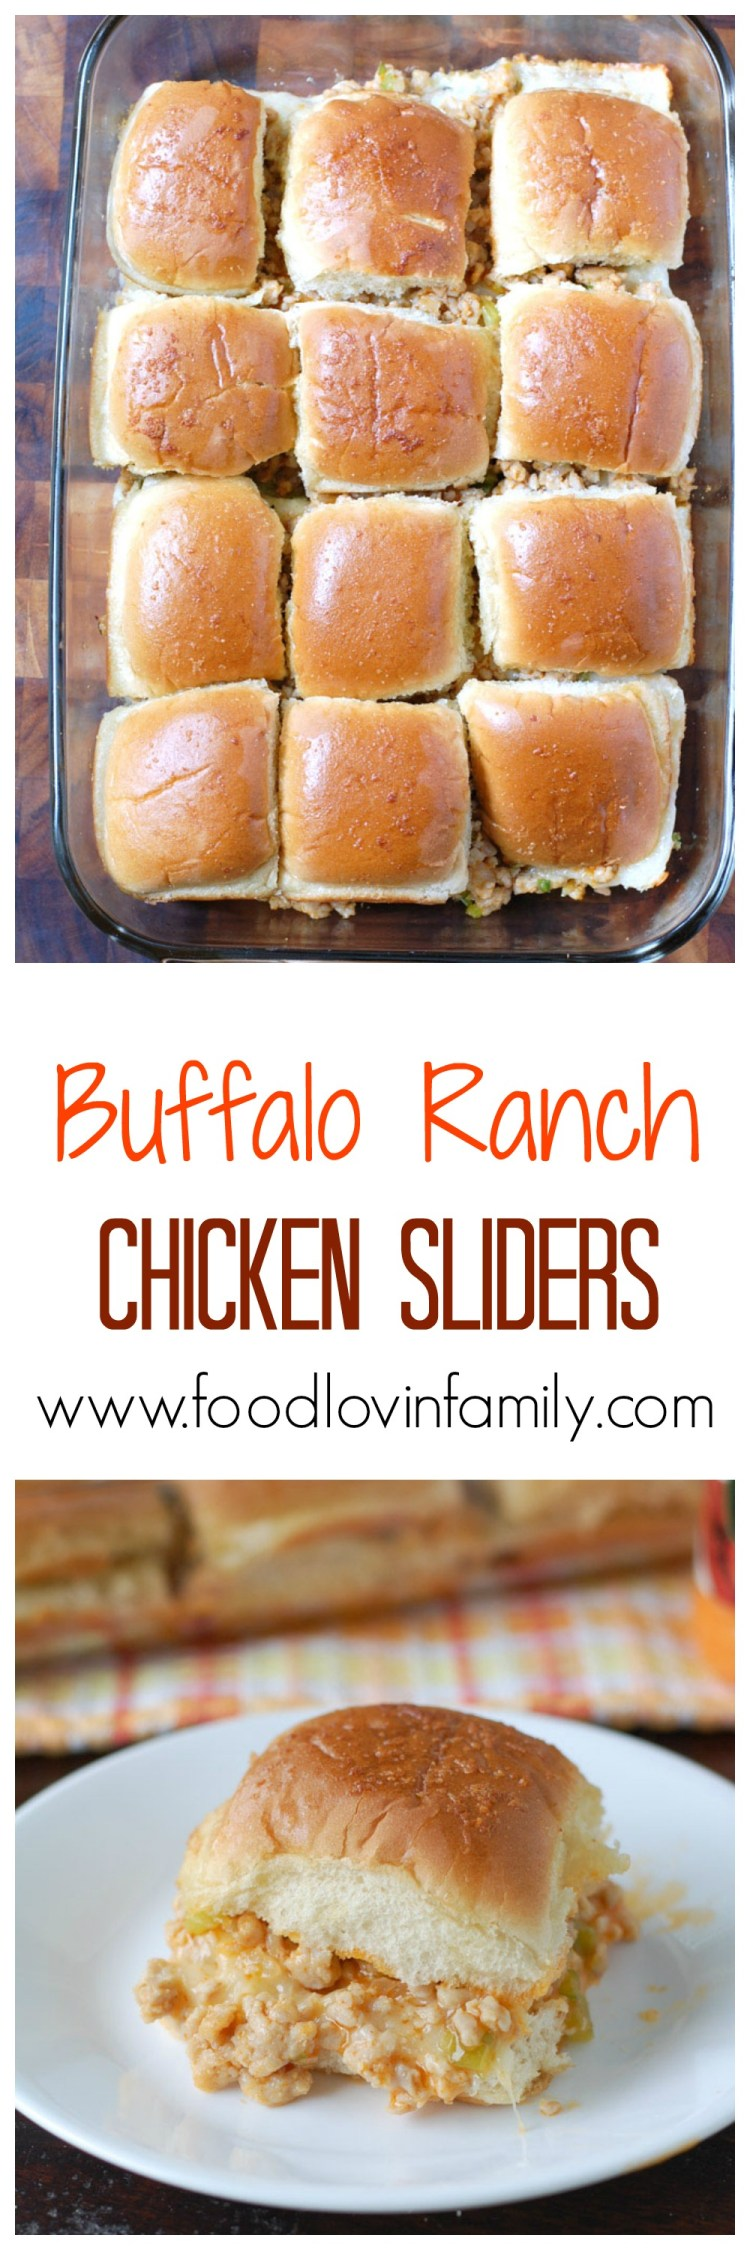 Buffalo Ranch Chicken Sliders - Food Lovin Family